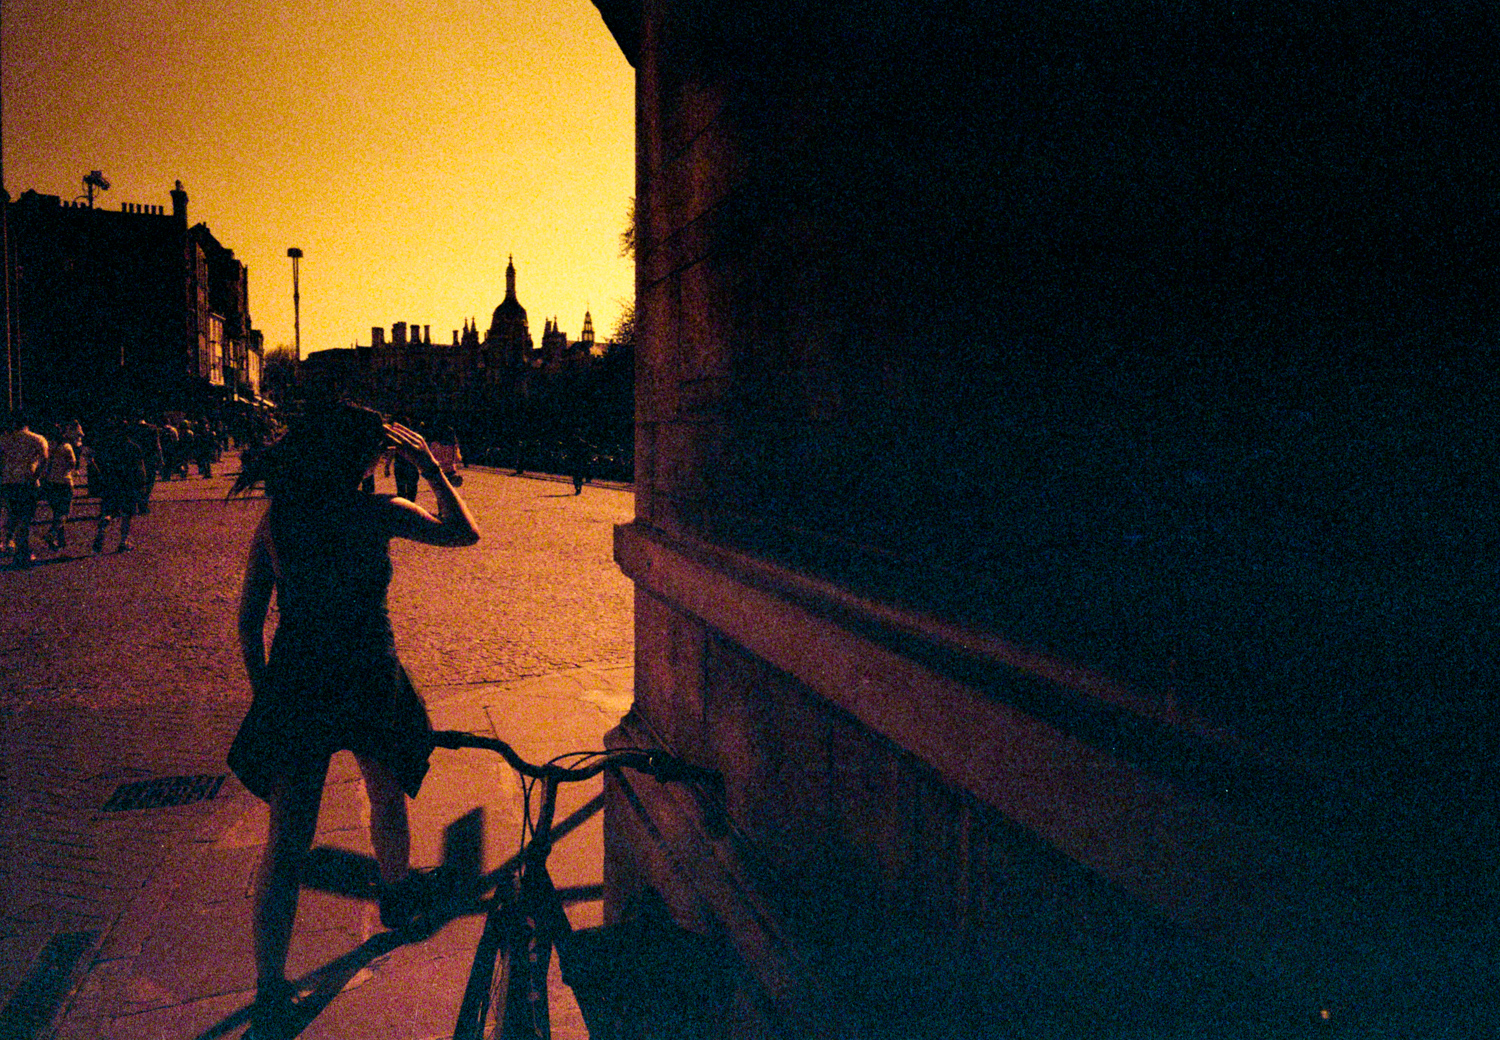 lomography-redscale-examples-5.jpg